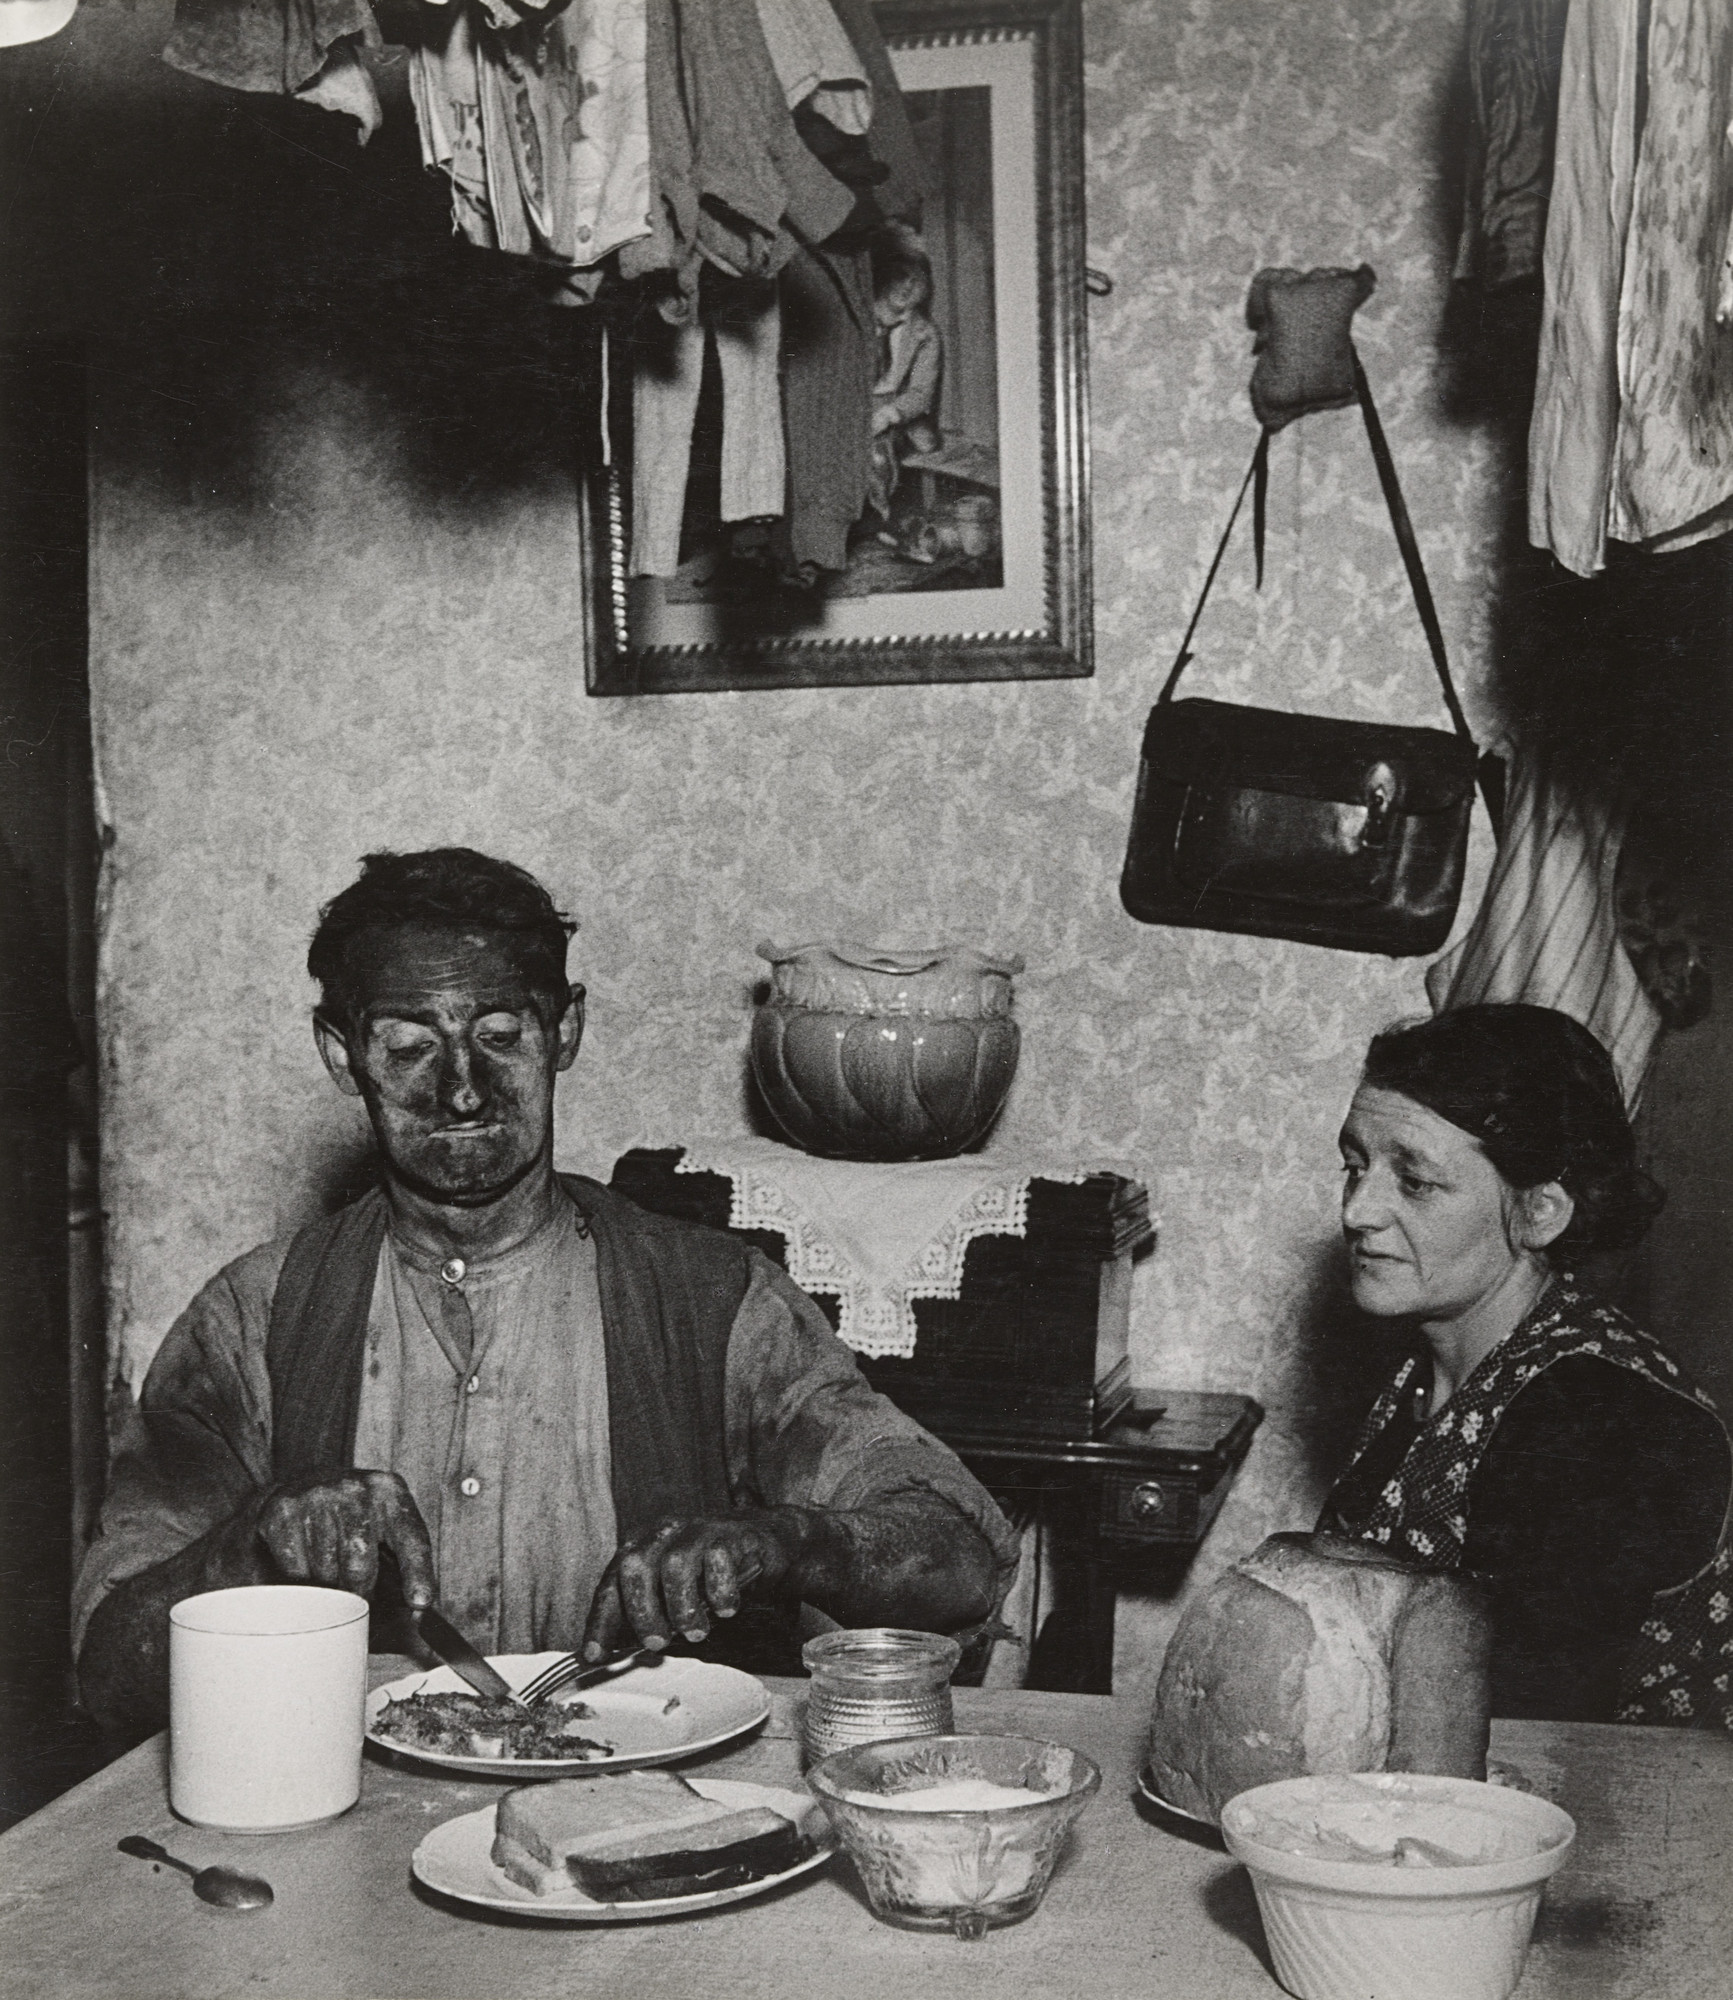 Bill Brandt. Northumbrian Miner at His Evening Meal. 1937